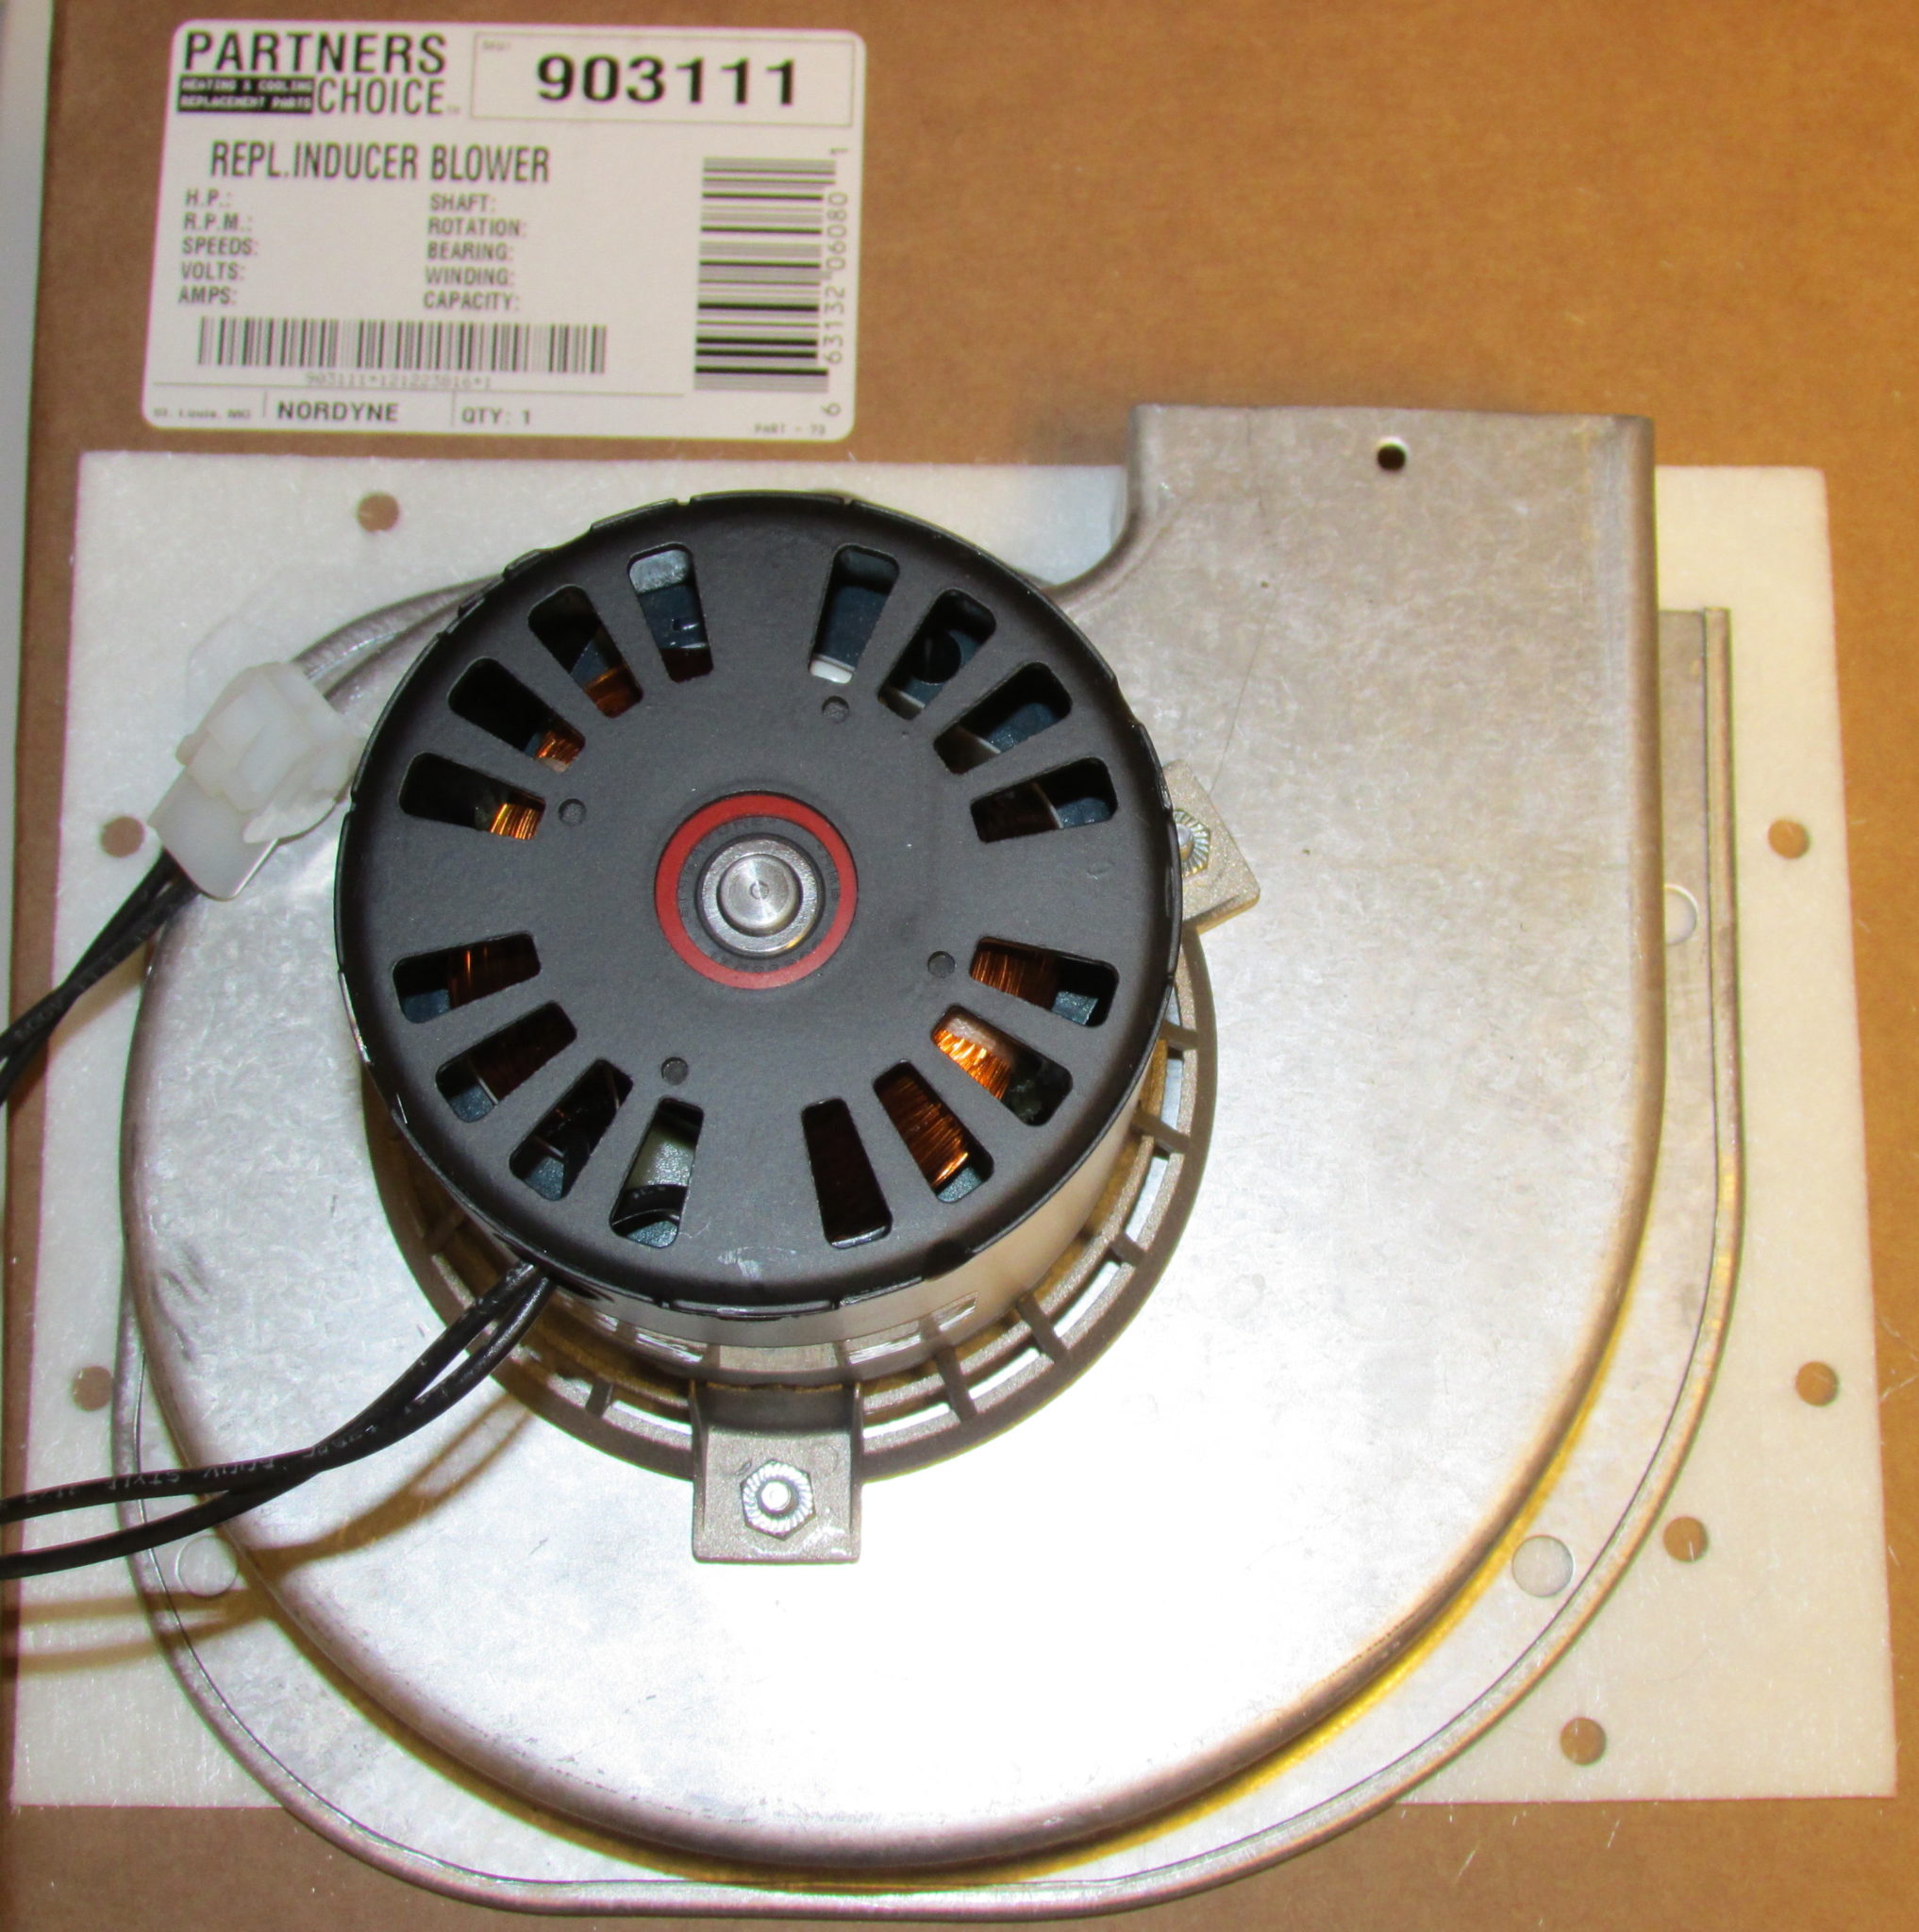 Nordyne Furnace Draft Inducer Blower Part 903111 on nordyne electric furnace parts